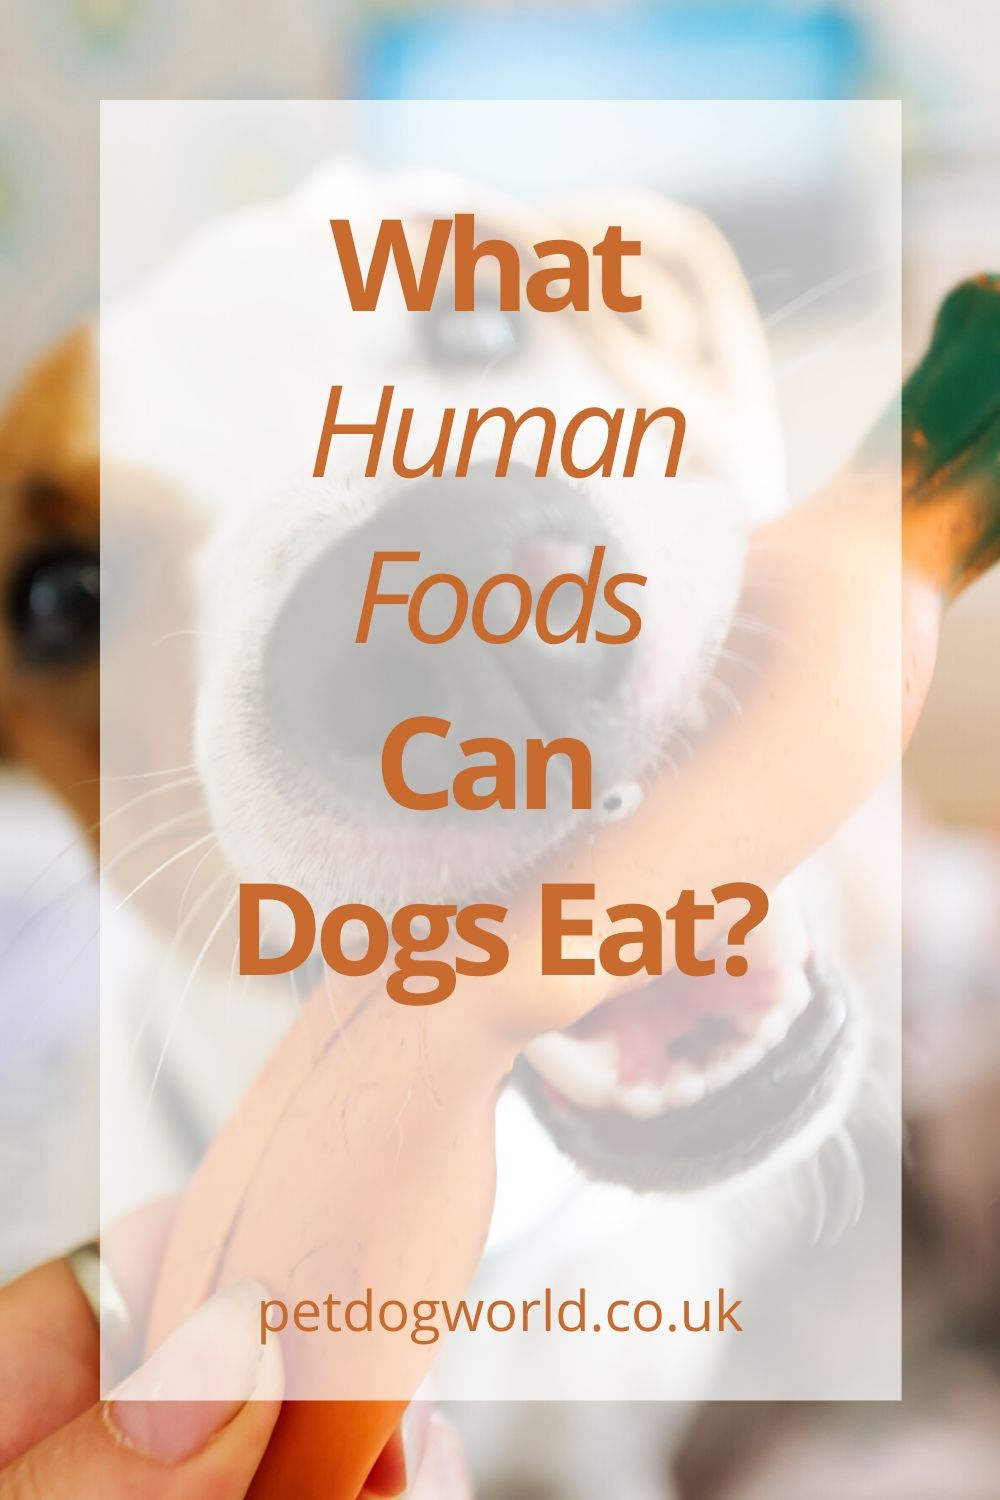 So, what are safe human foods for dogs? Let's look at some foods that are not only safe but could be beneficial to our canine friends.